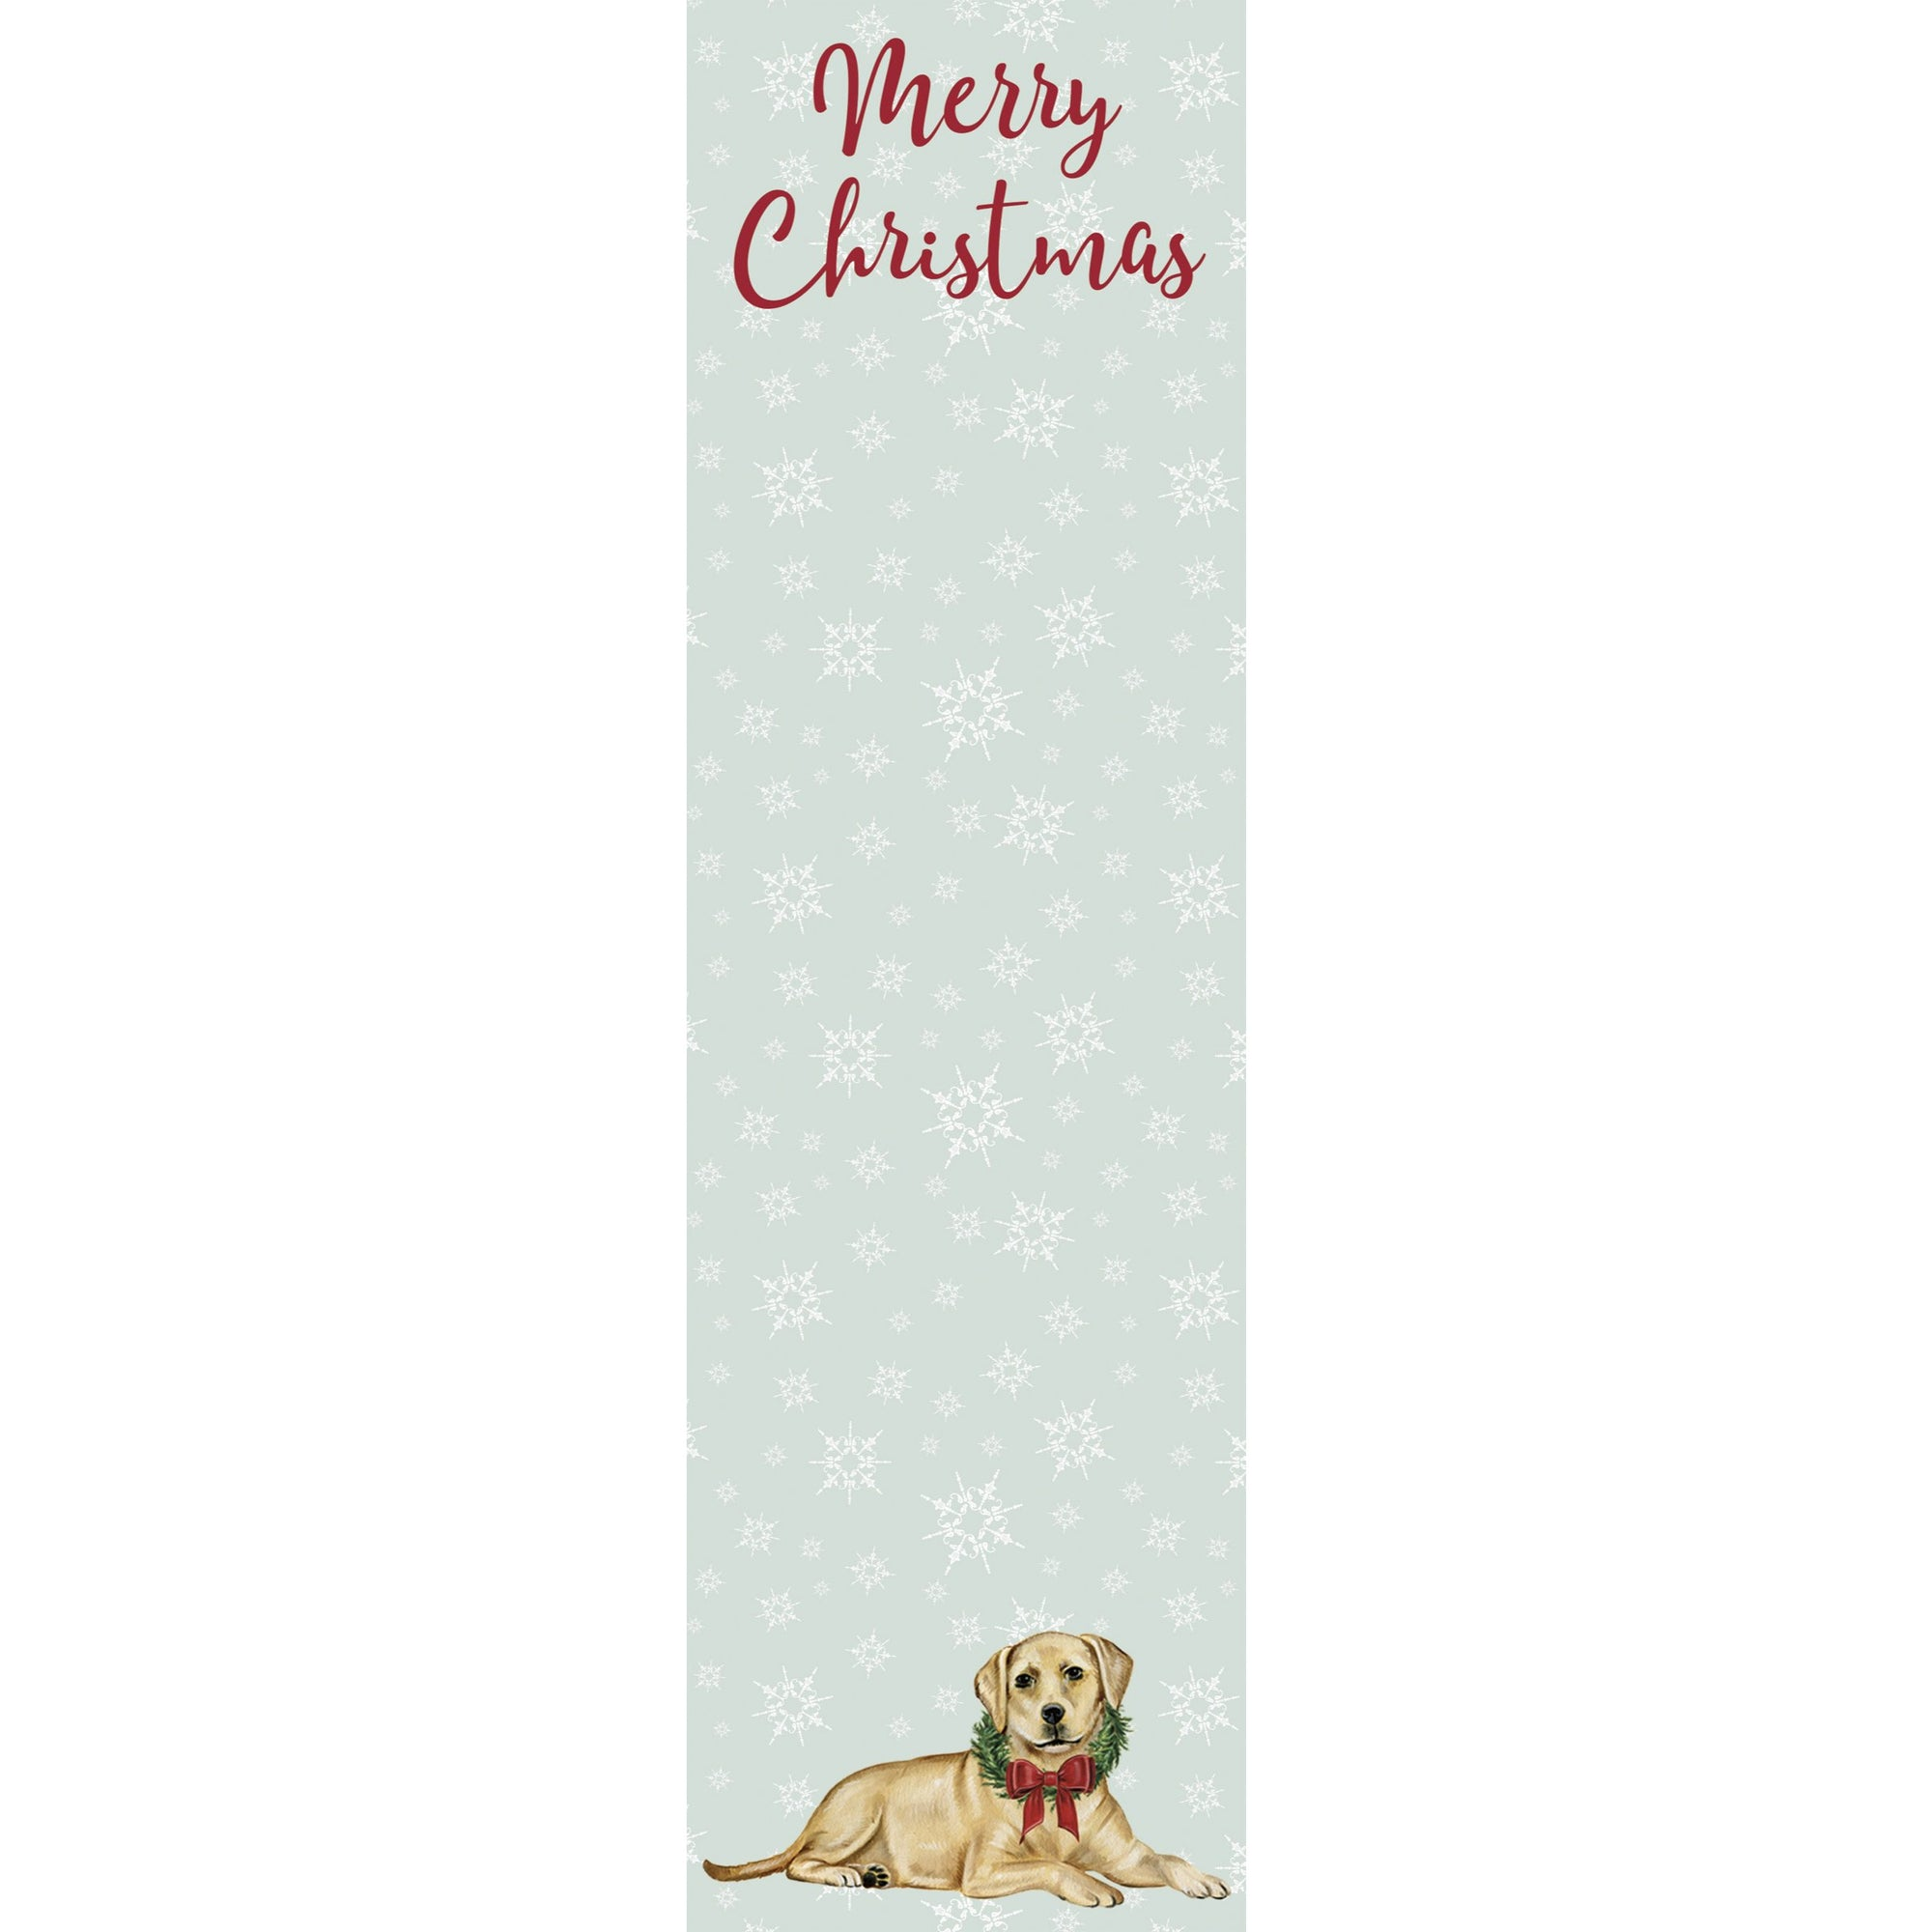 Primitives by Kathy - Holiday List Notepad, Yellow Lab